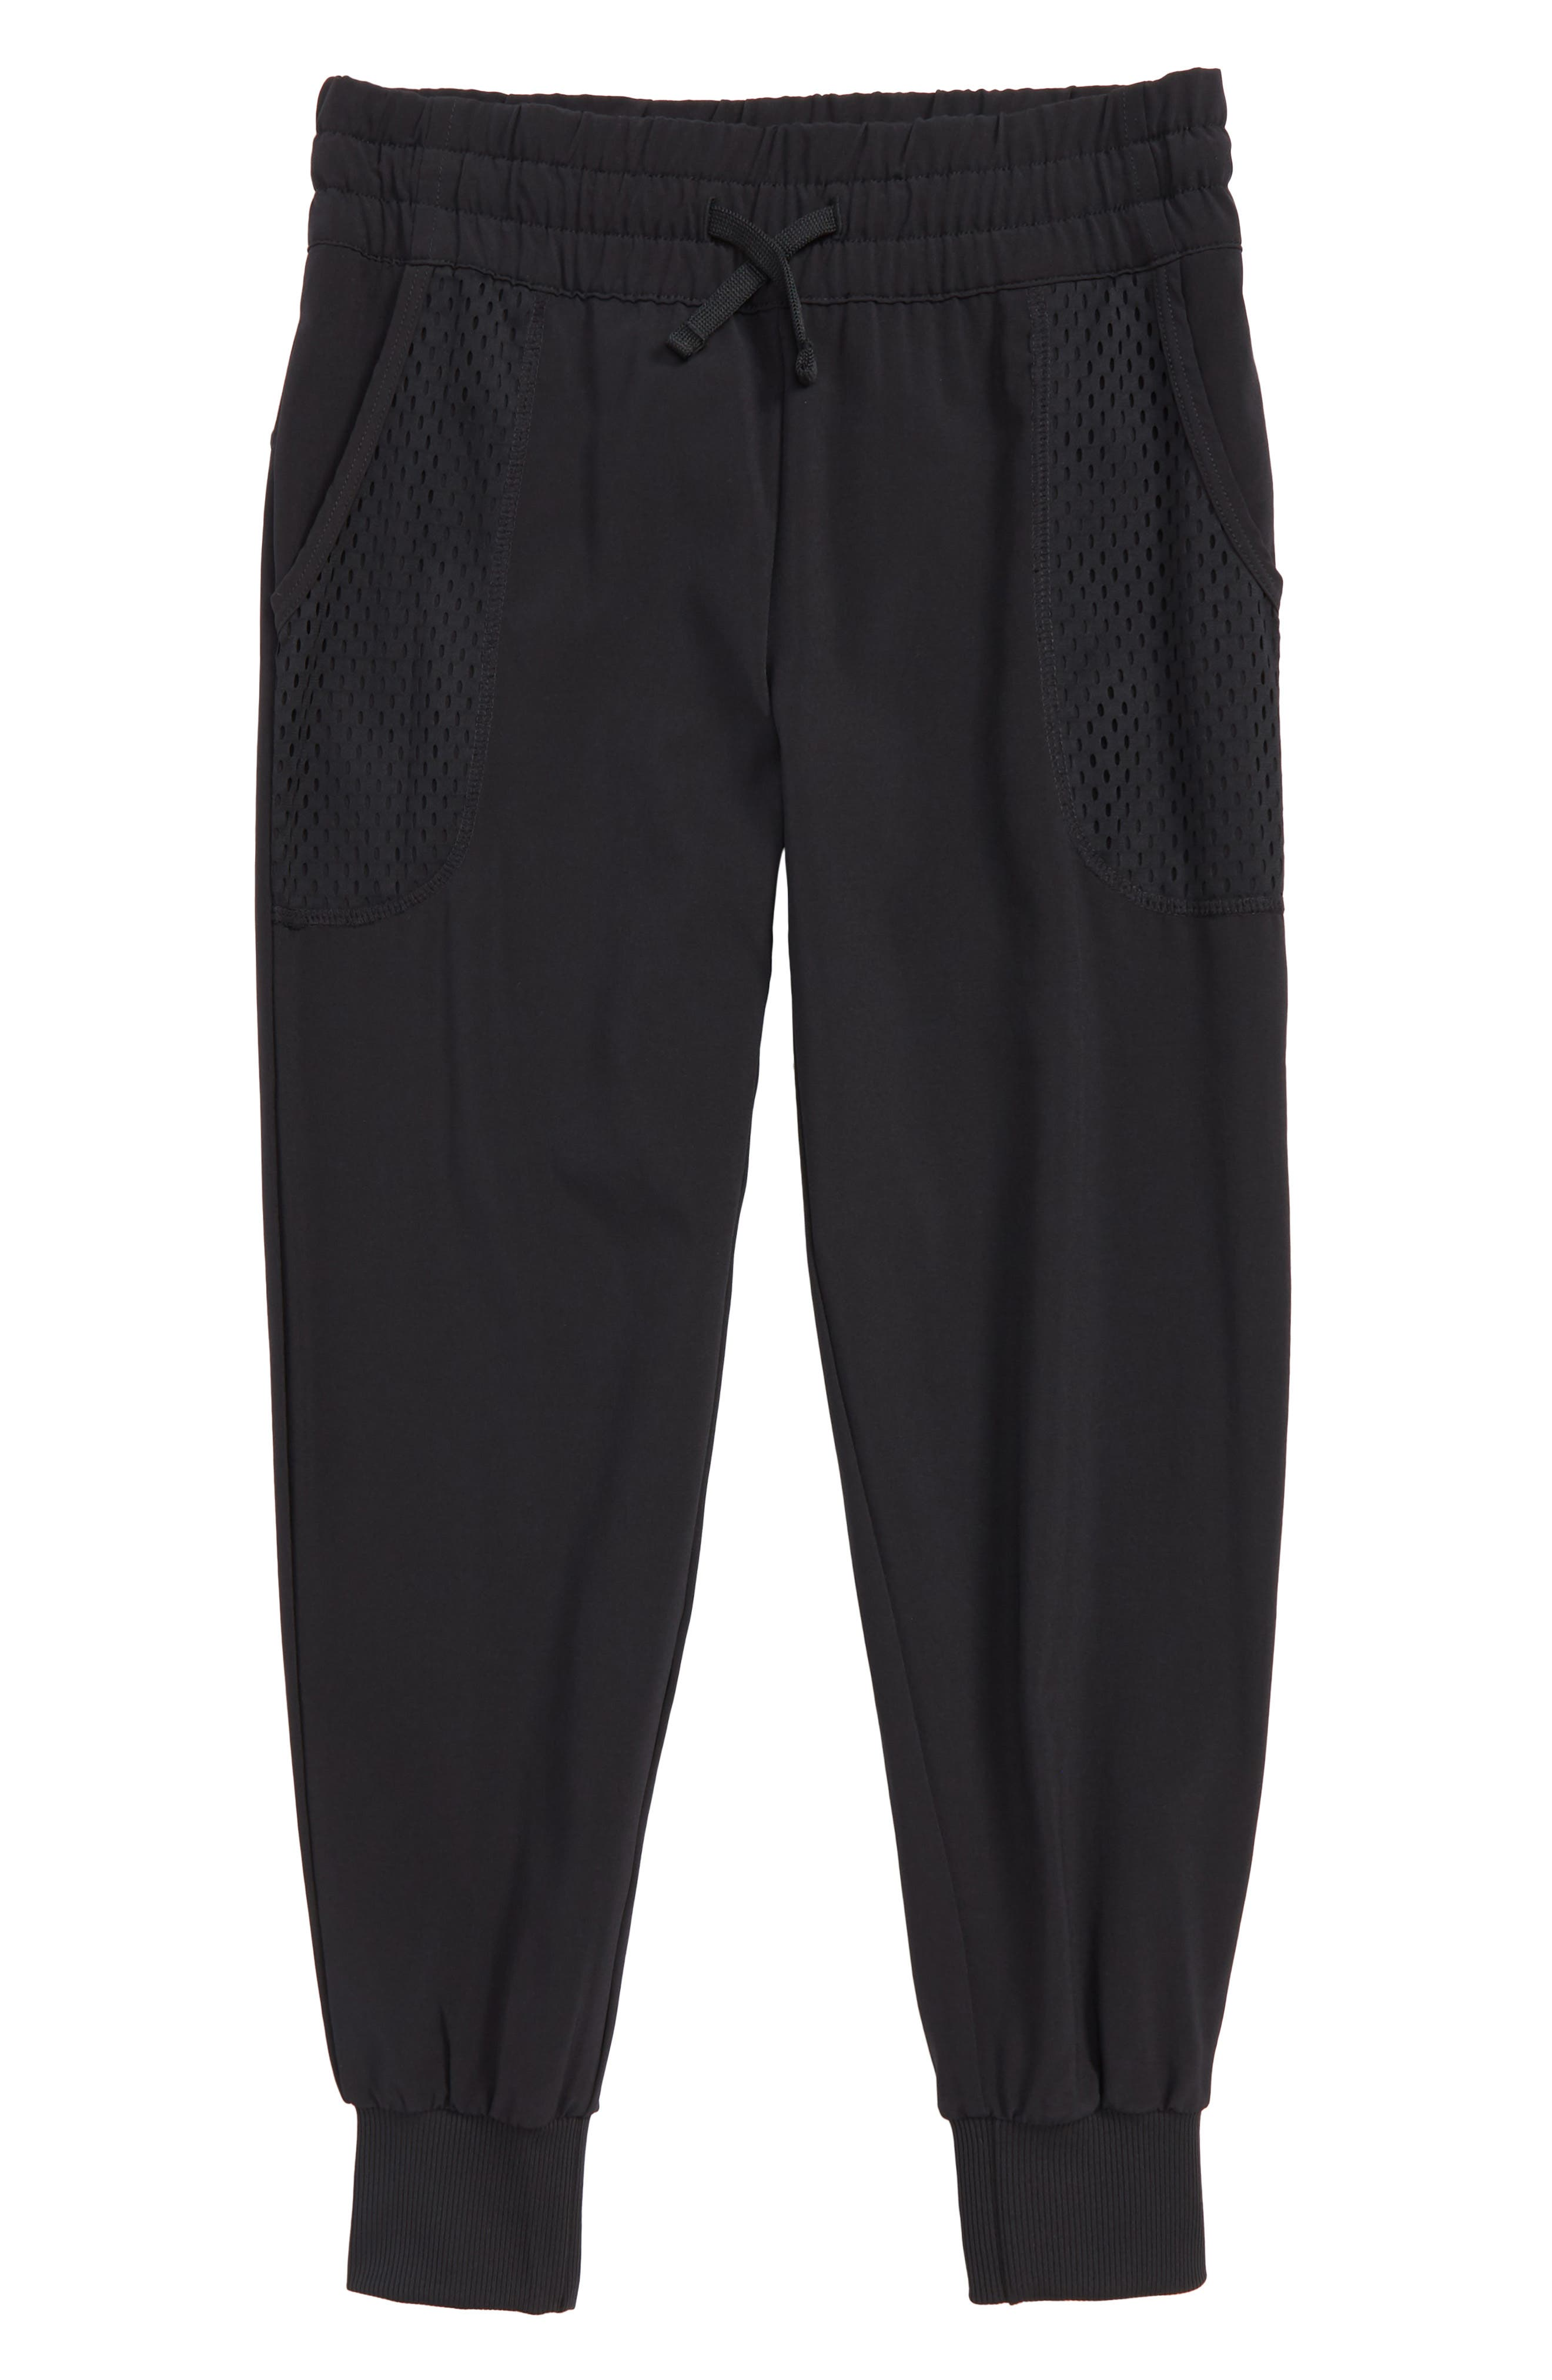 Mesh Pocket Jogger Pants,                             Main thumbnail 1, color,                             001